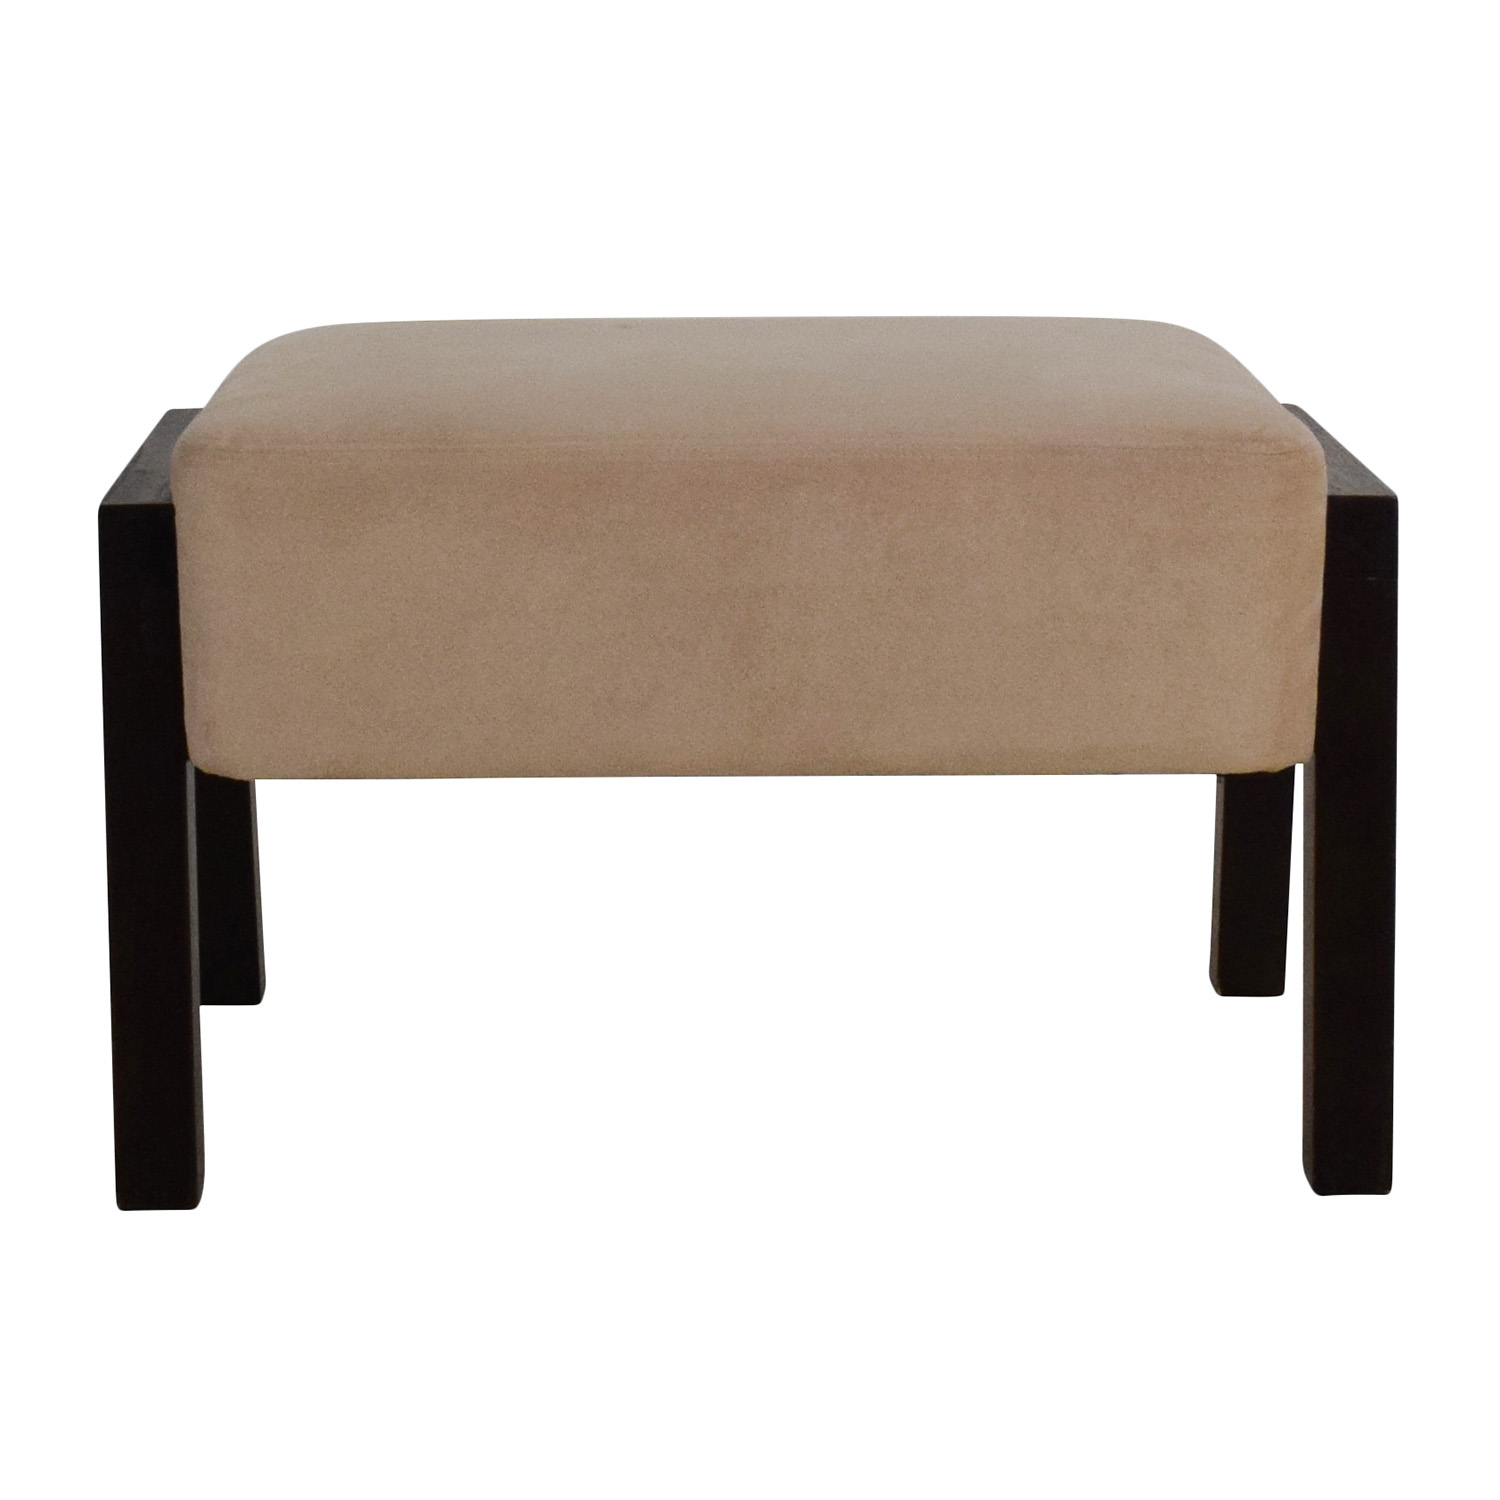 Microsuede Beige Ottoman price